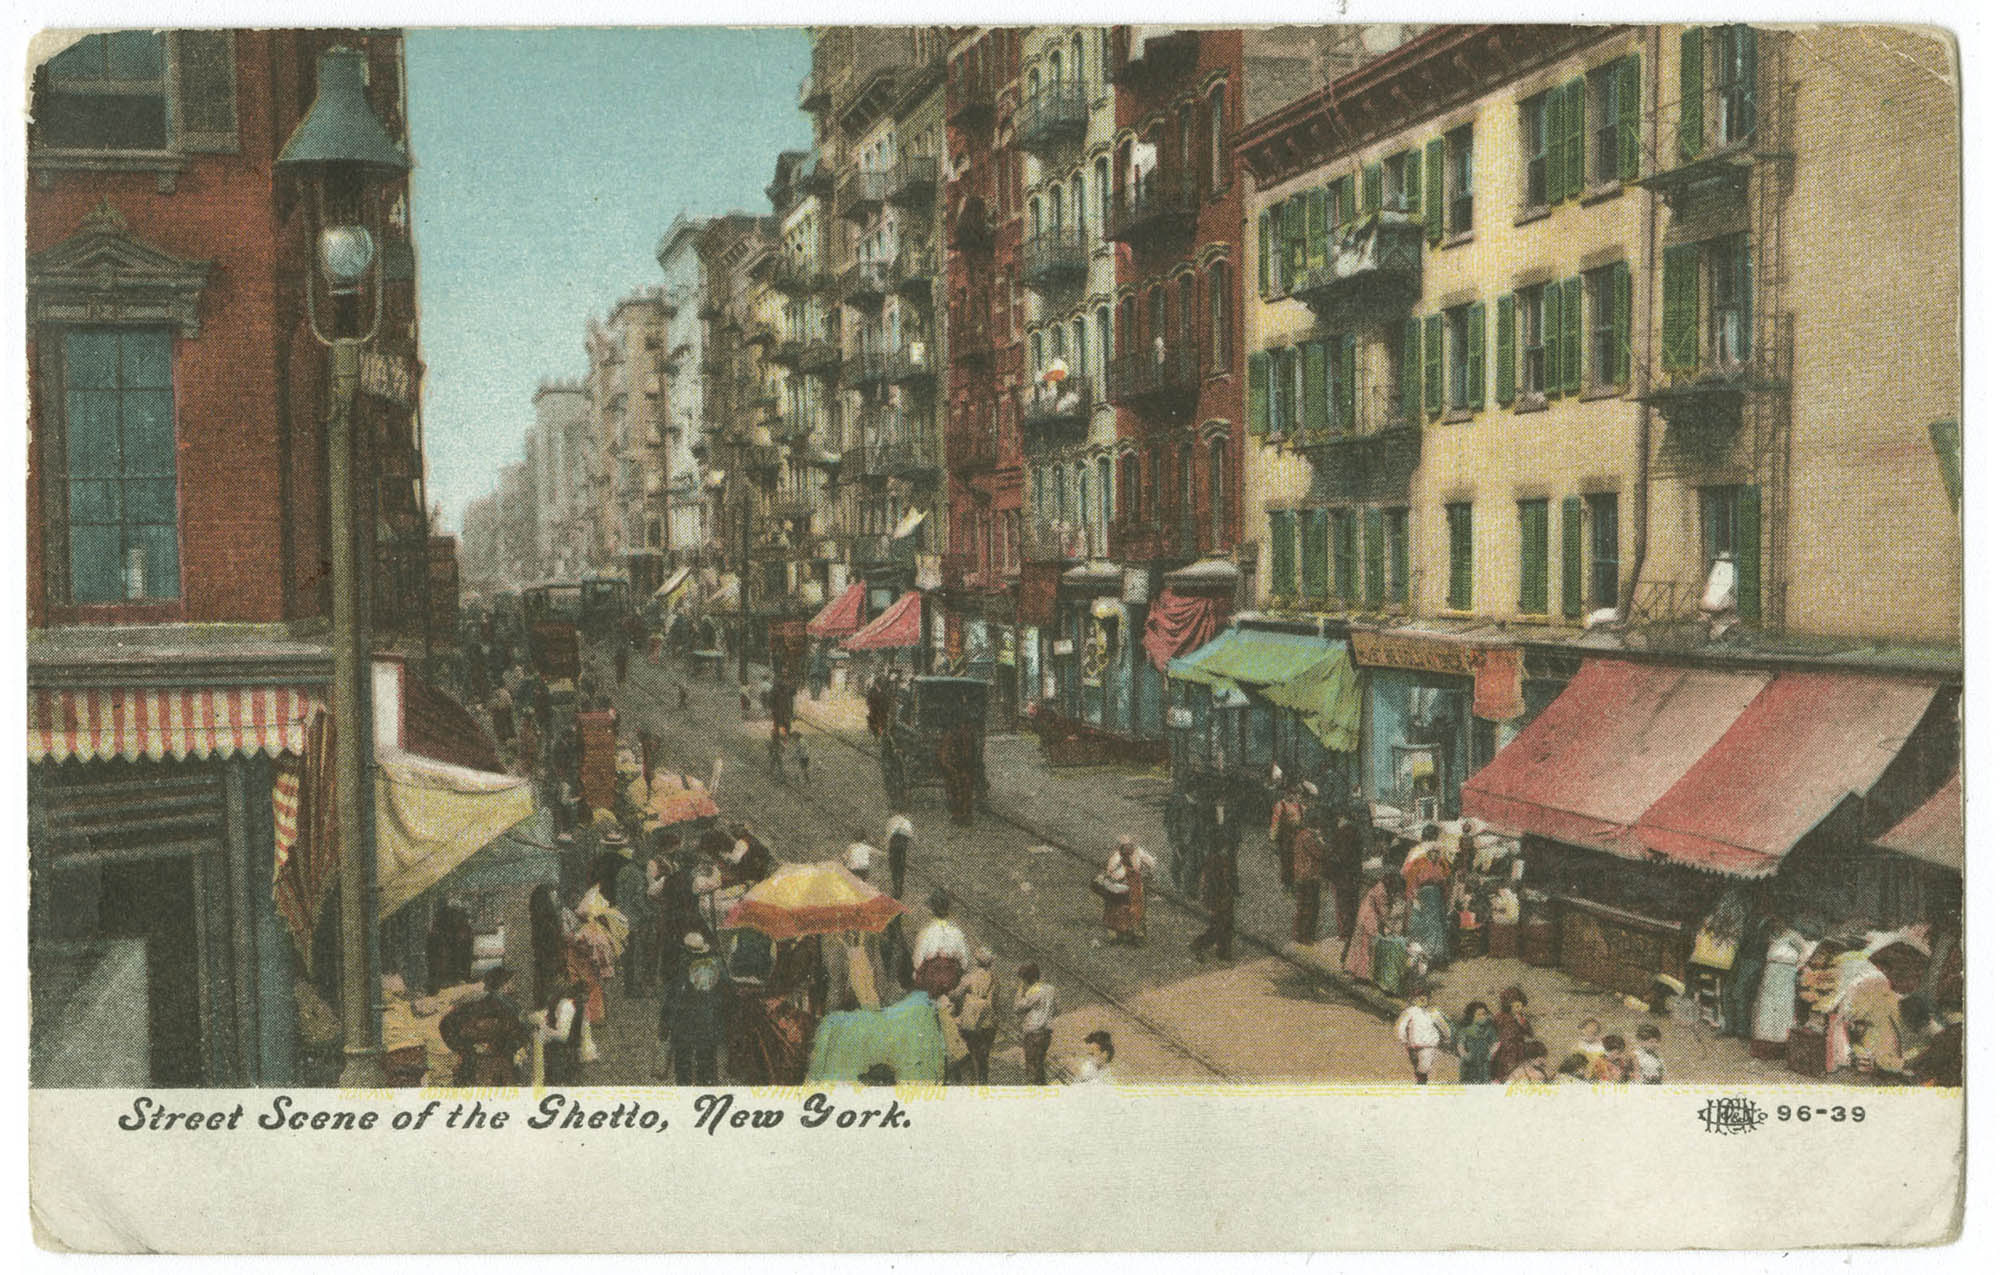 Street Scene of the Ghetto, New York